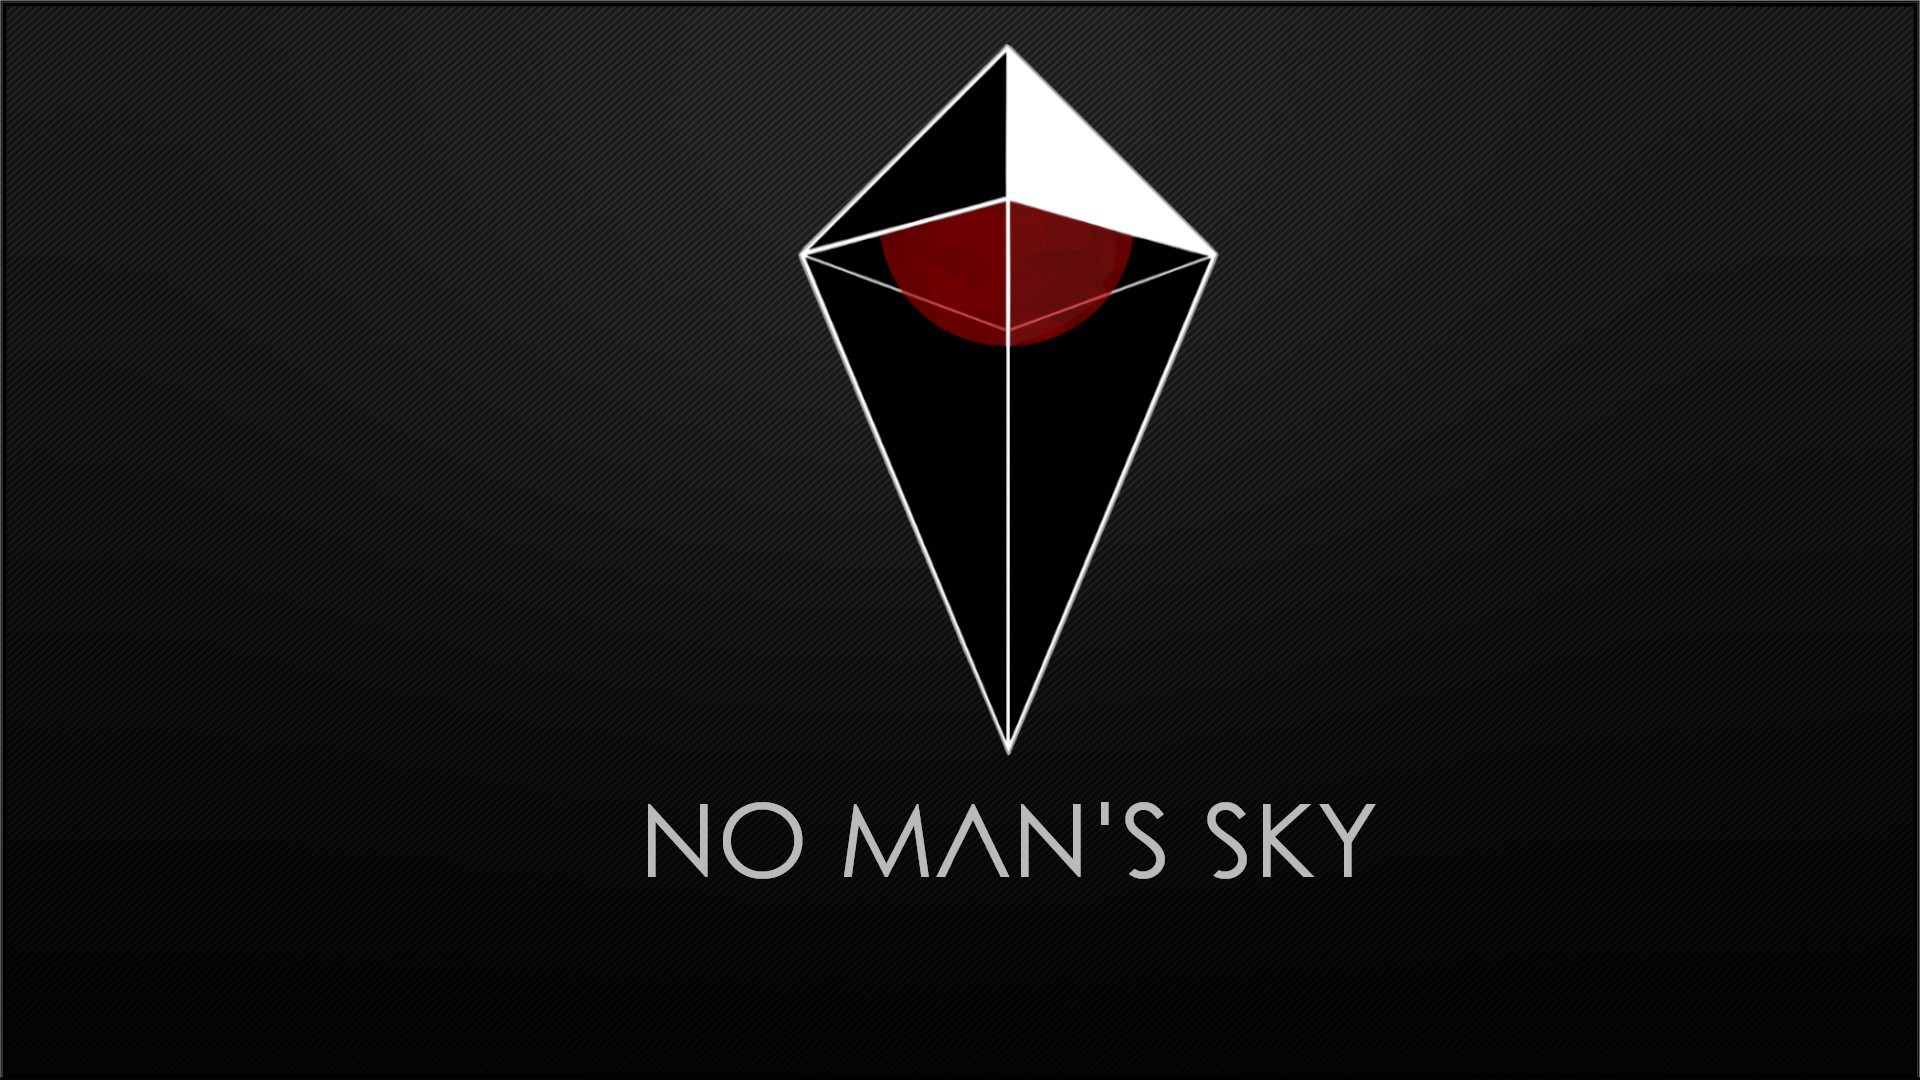 No Man's Sky Wallpapers Images Photos Pictures Backgrounds